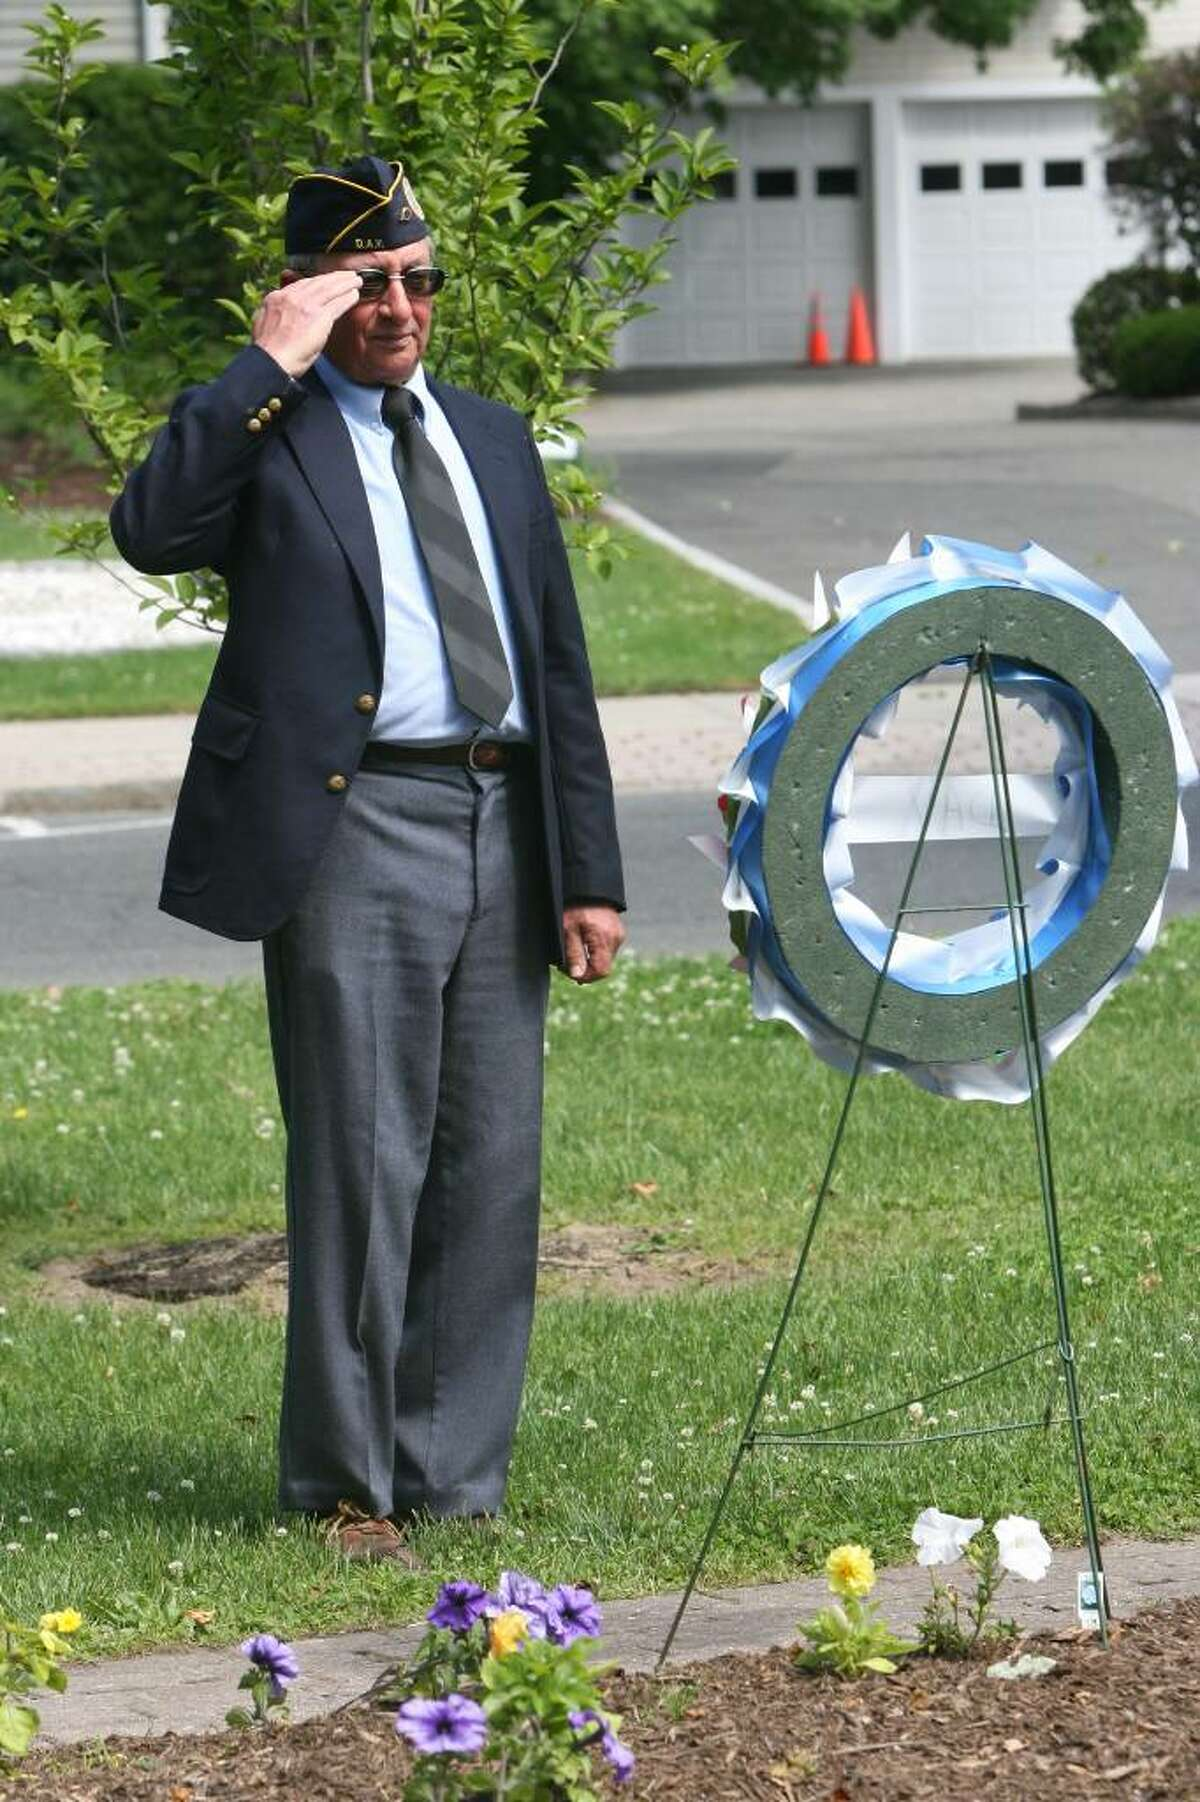 Veteran Mike Copelan, of DAV chapter 15, salutes during a wreath laying ceremony in Milford on Sunday morning.